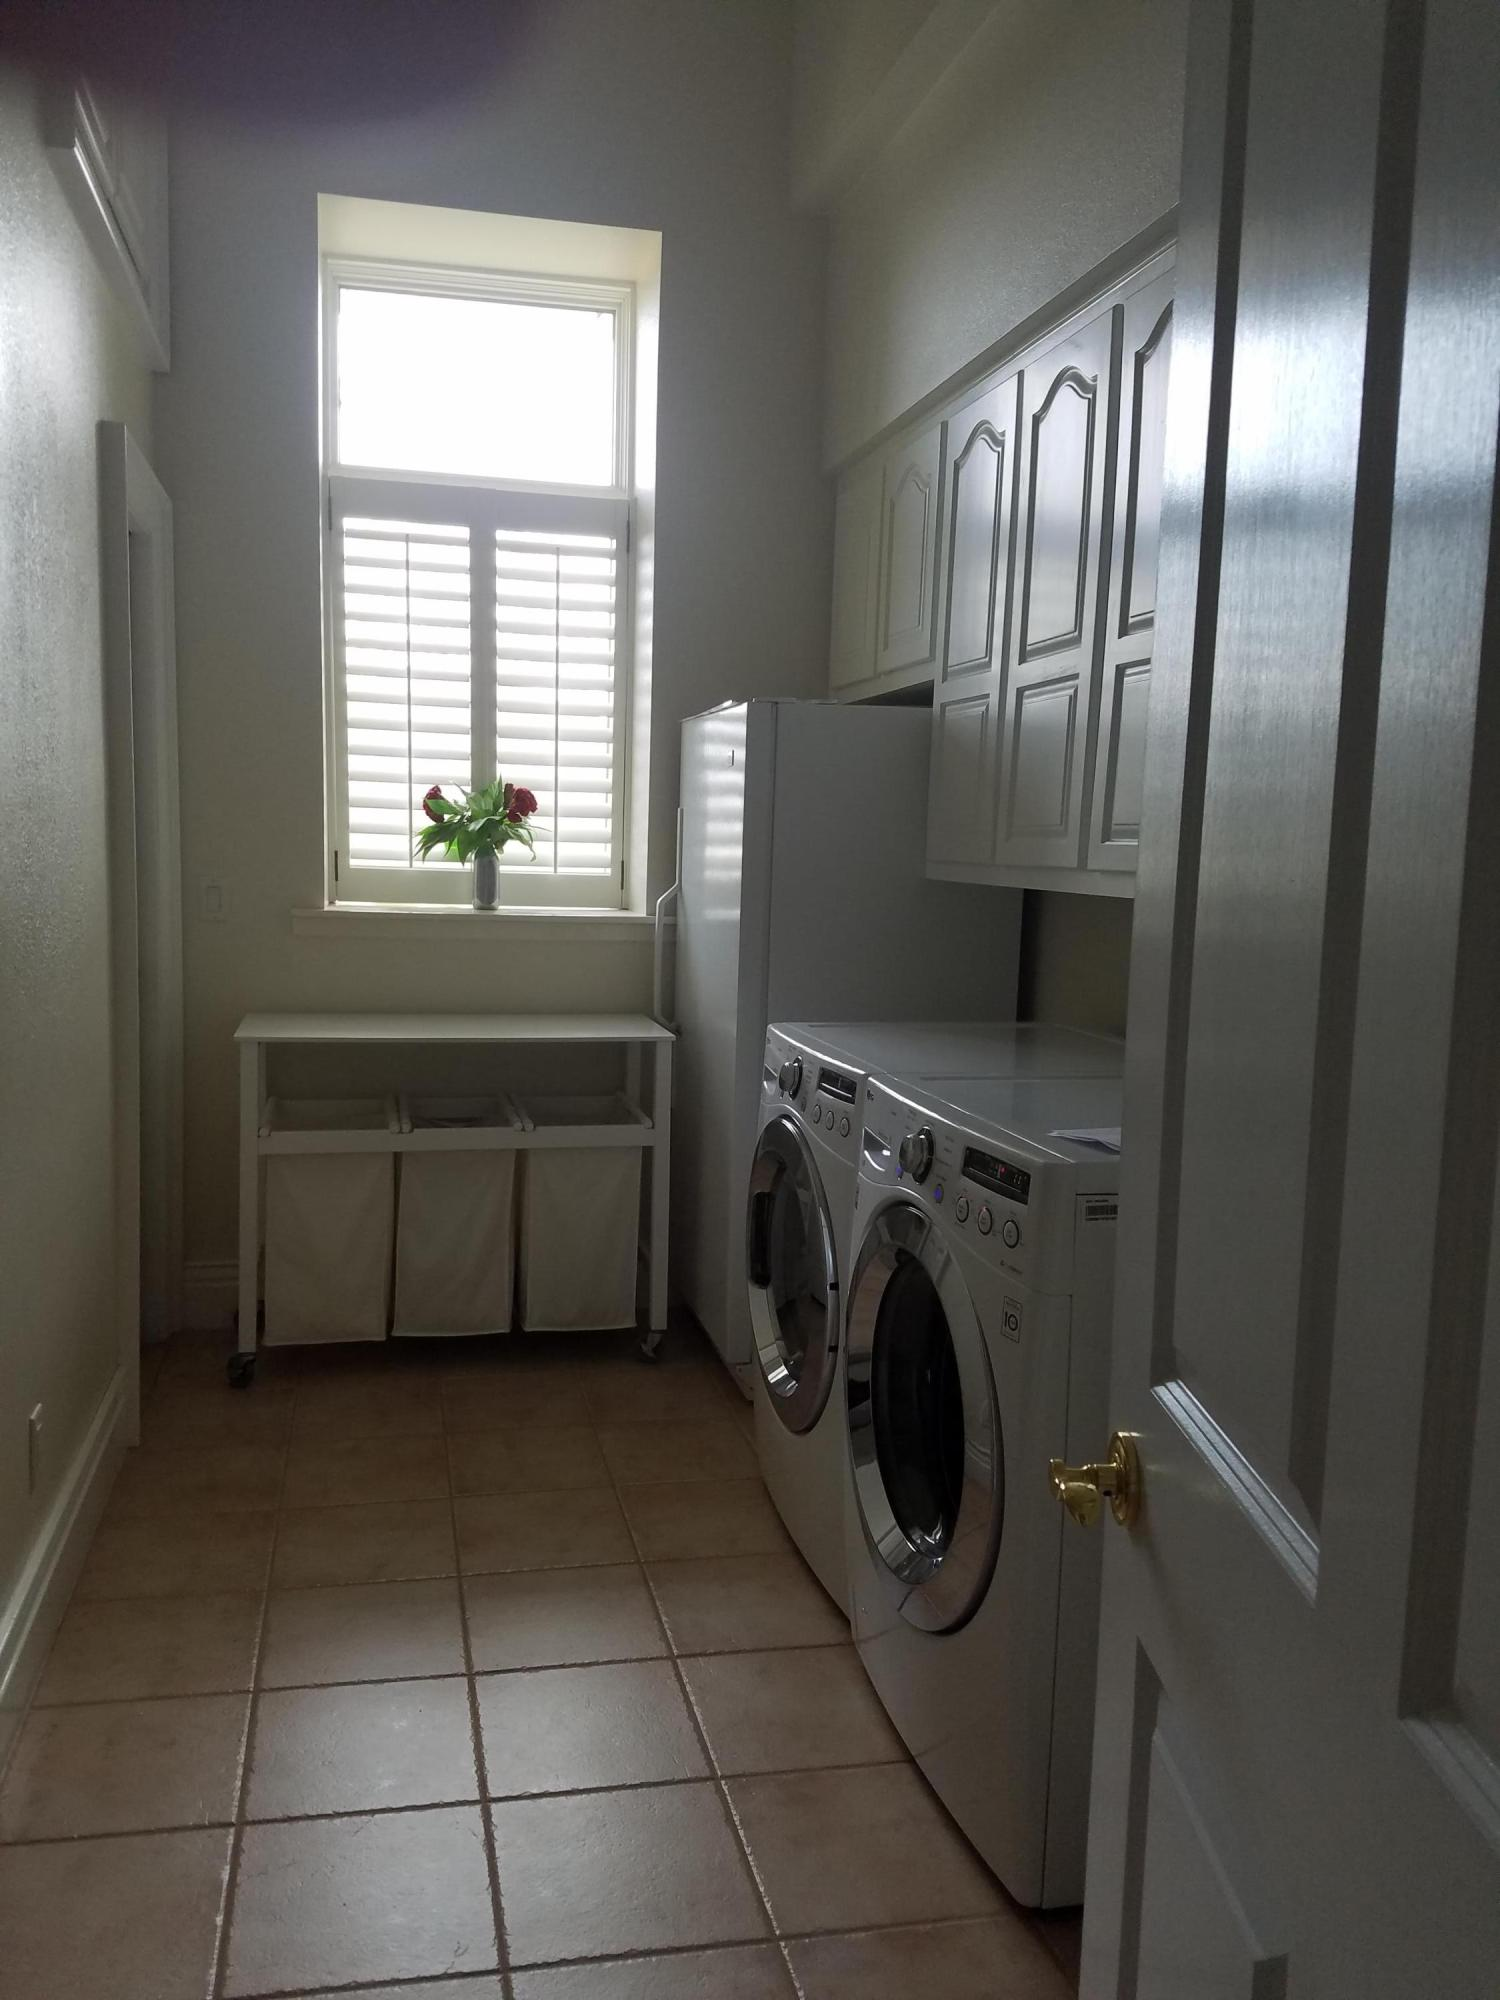 Utility Room with Tons of Storage